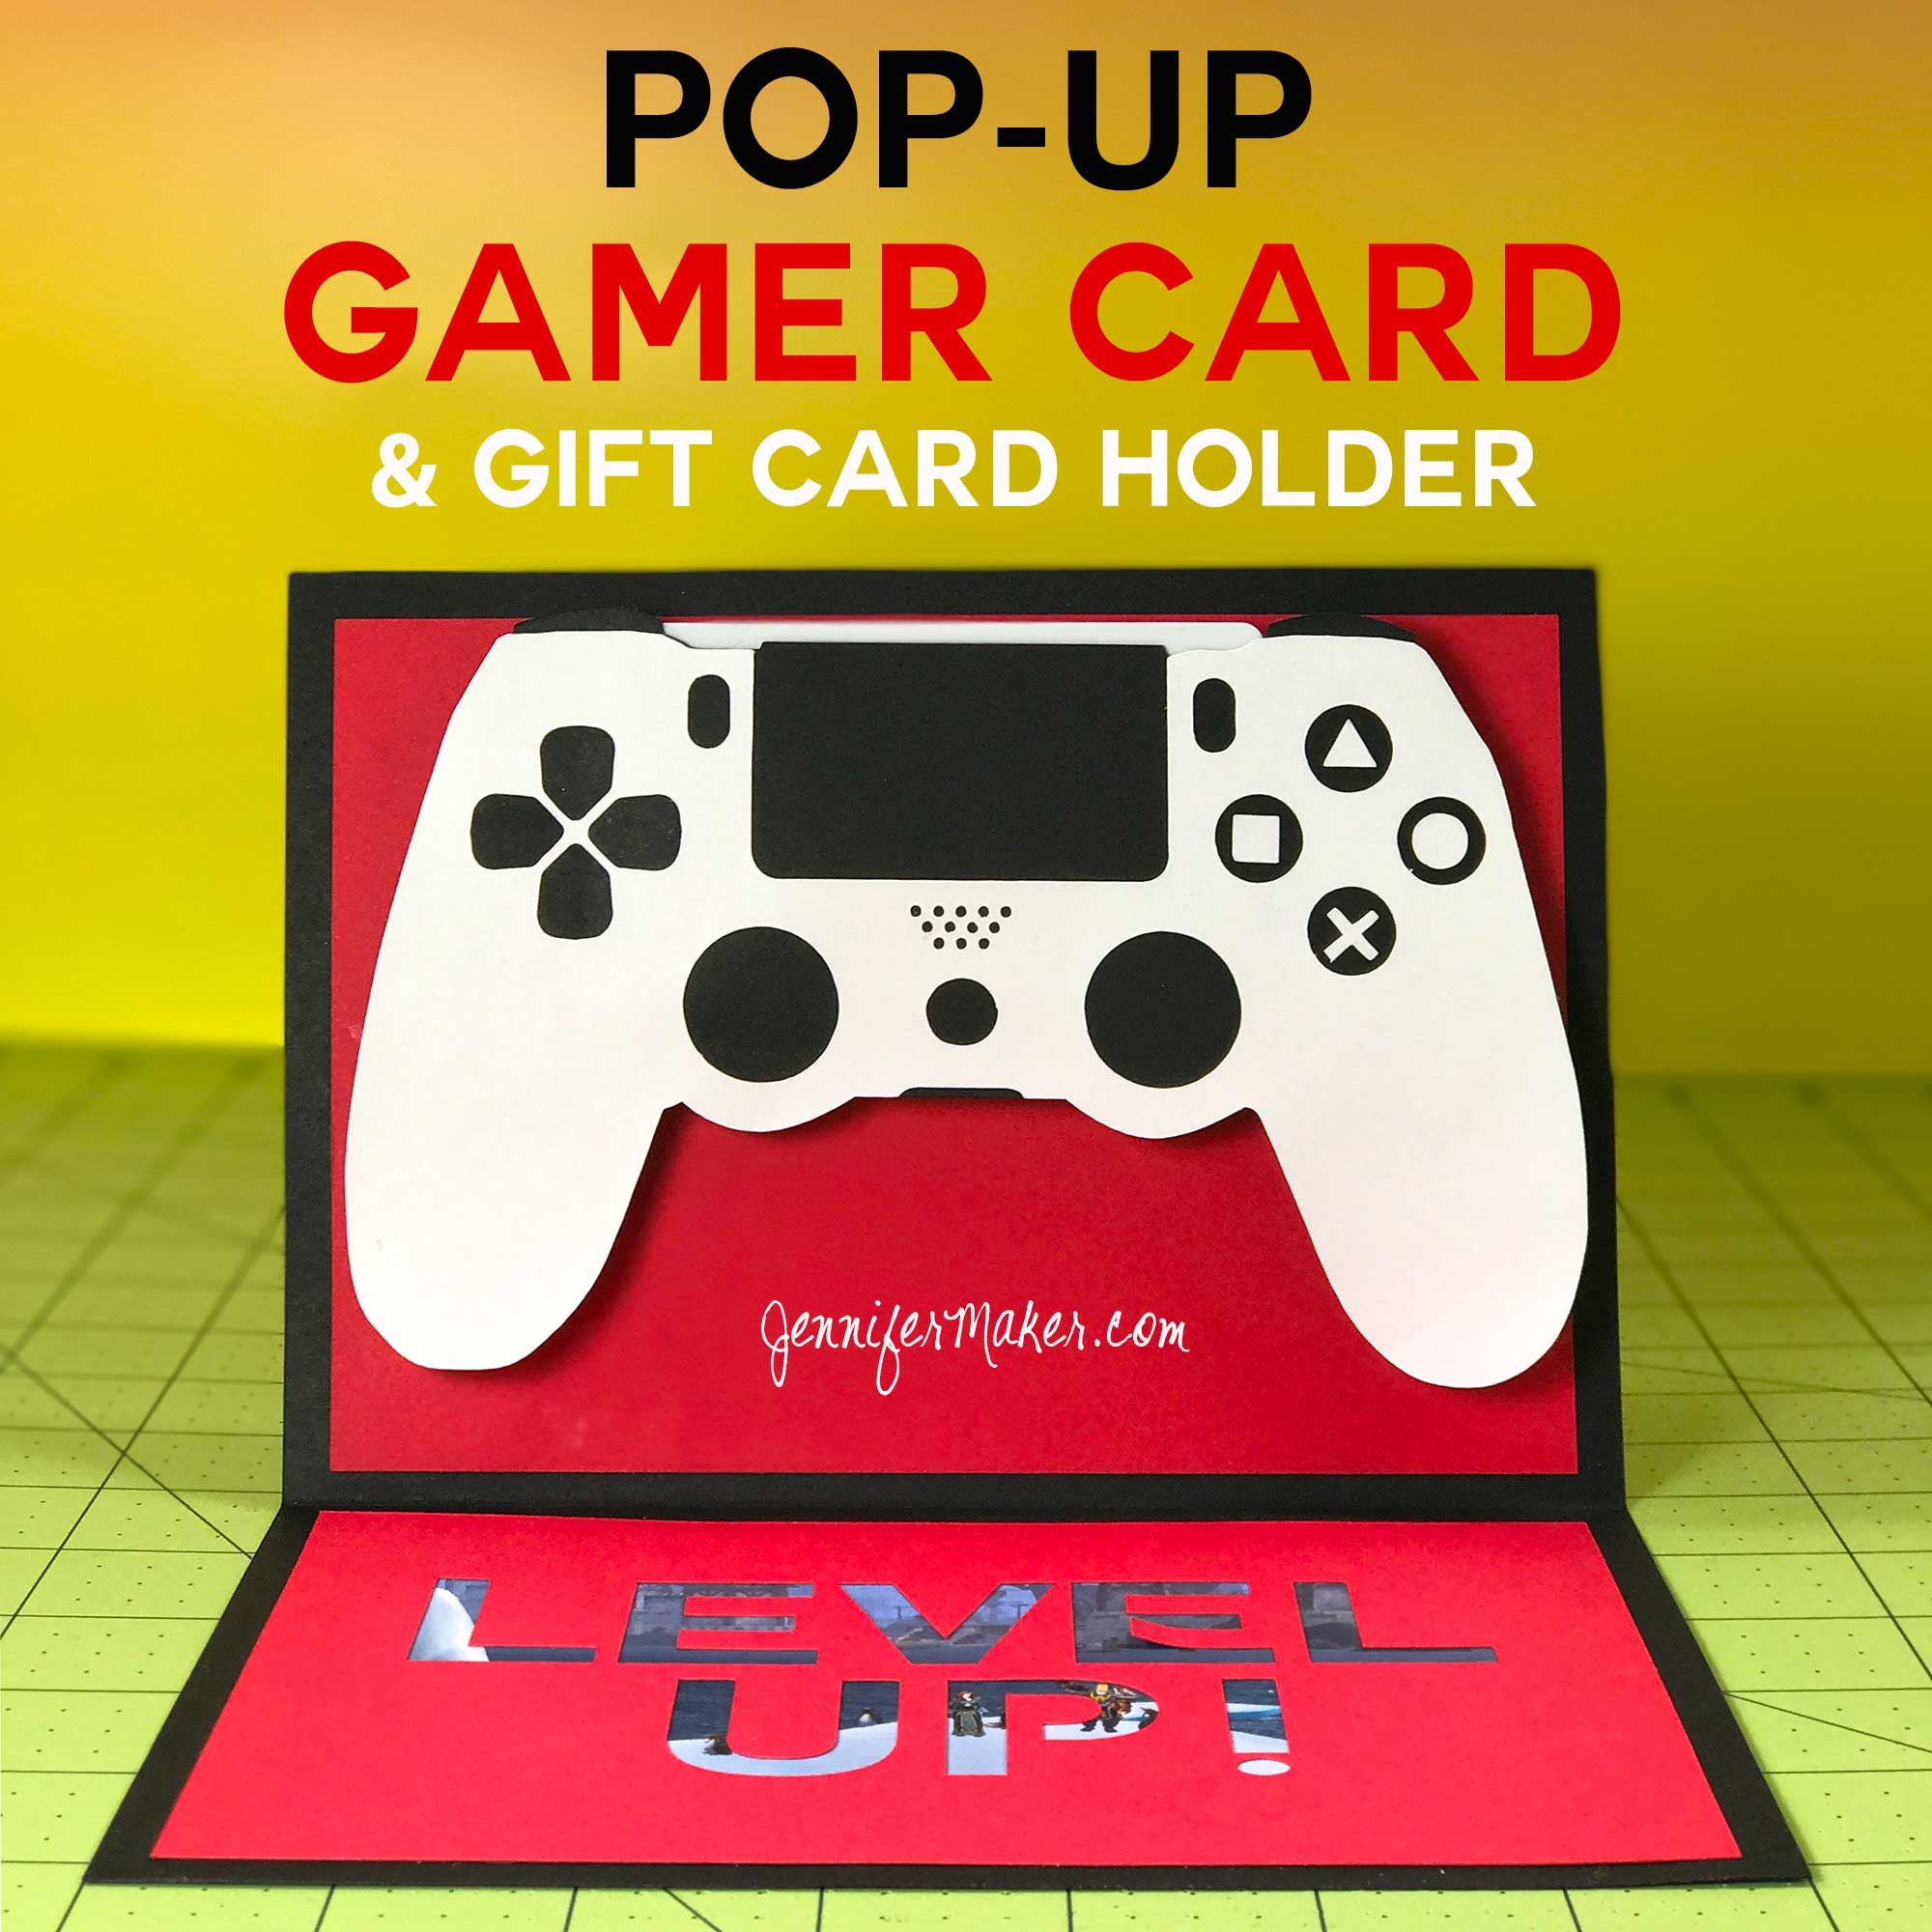 DIY Gamer Card With Gift Holder Tutorial